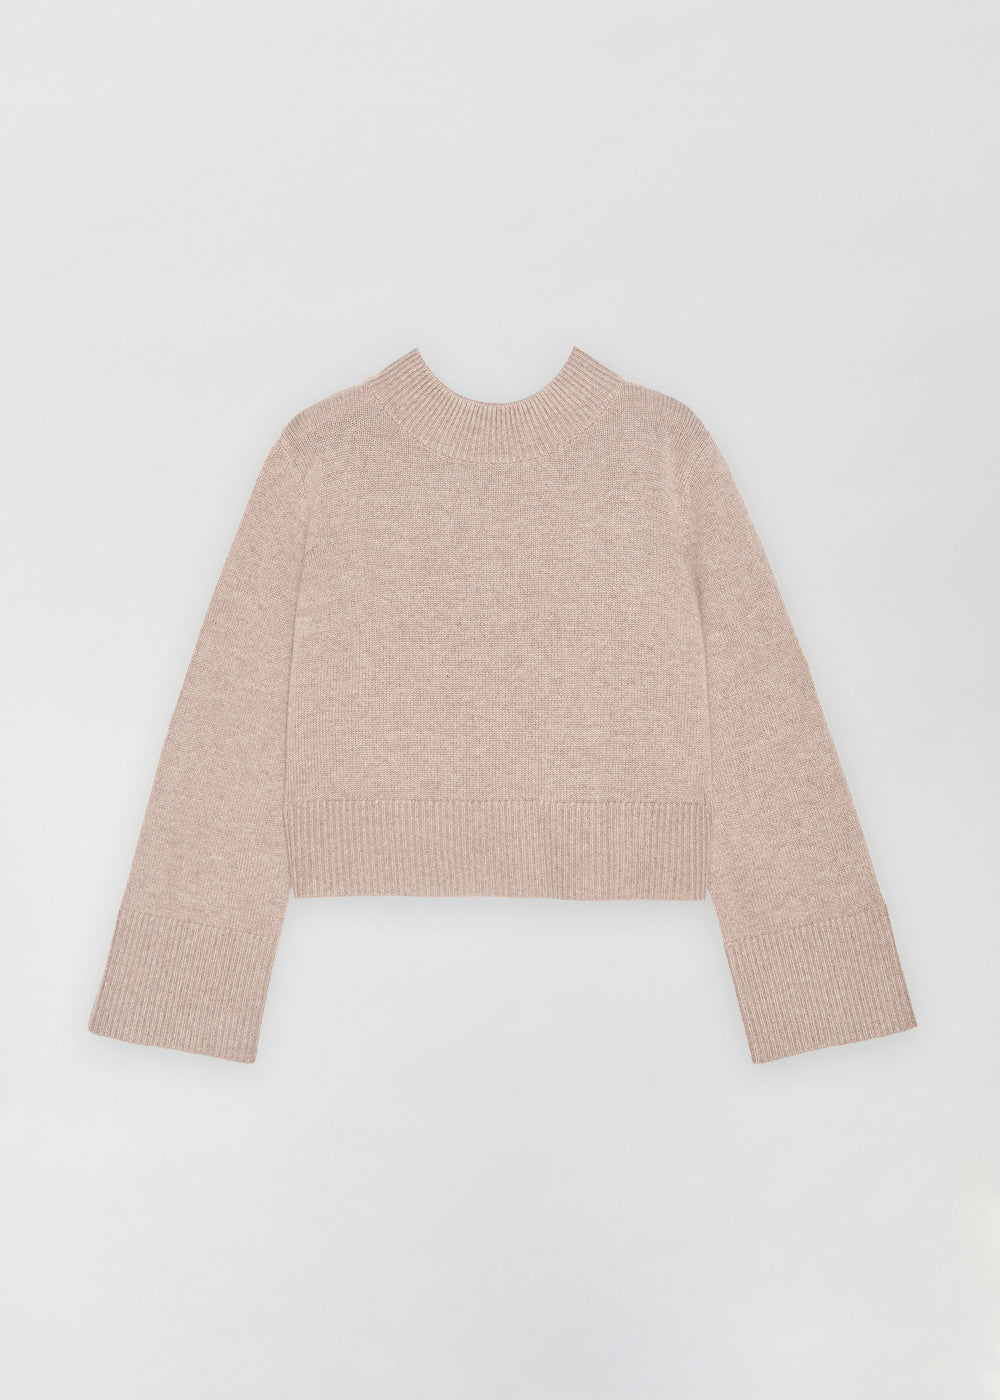 Boxy Crew Neck Sweater - Ivory in Taupe by Co Collections